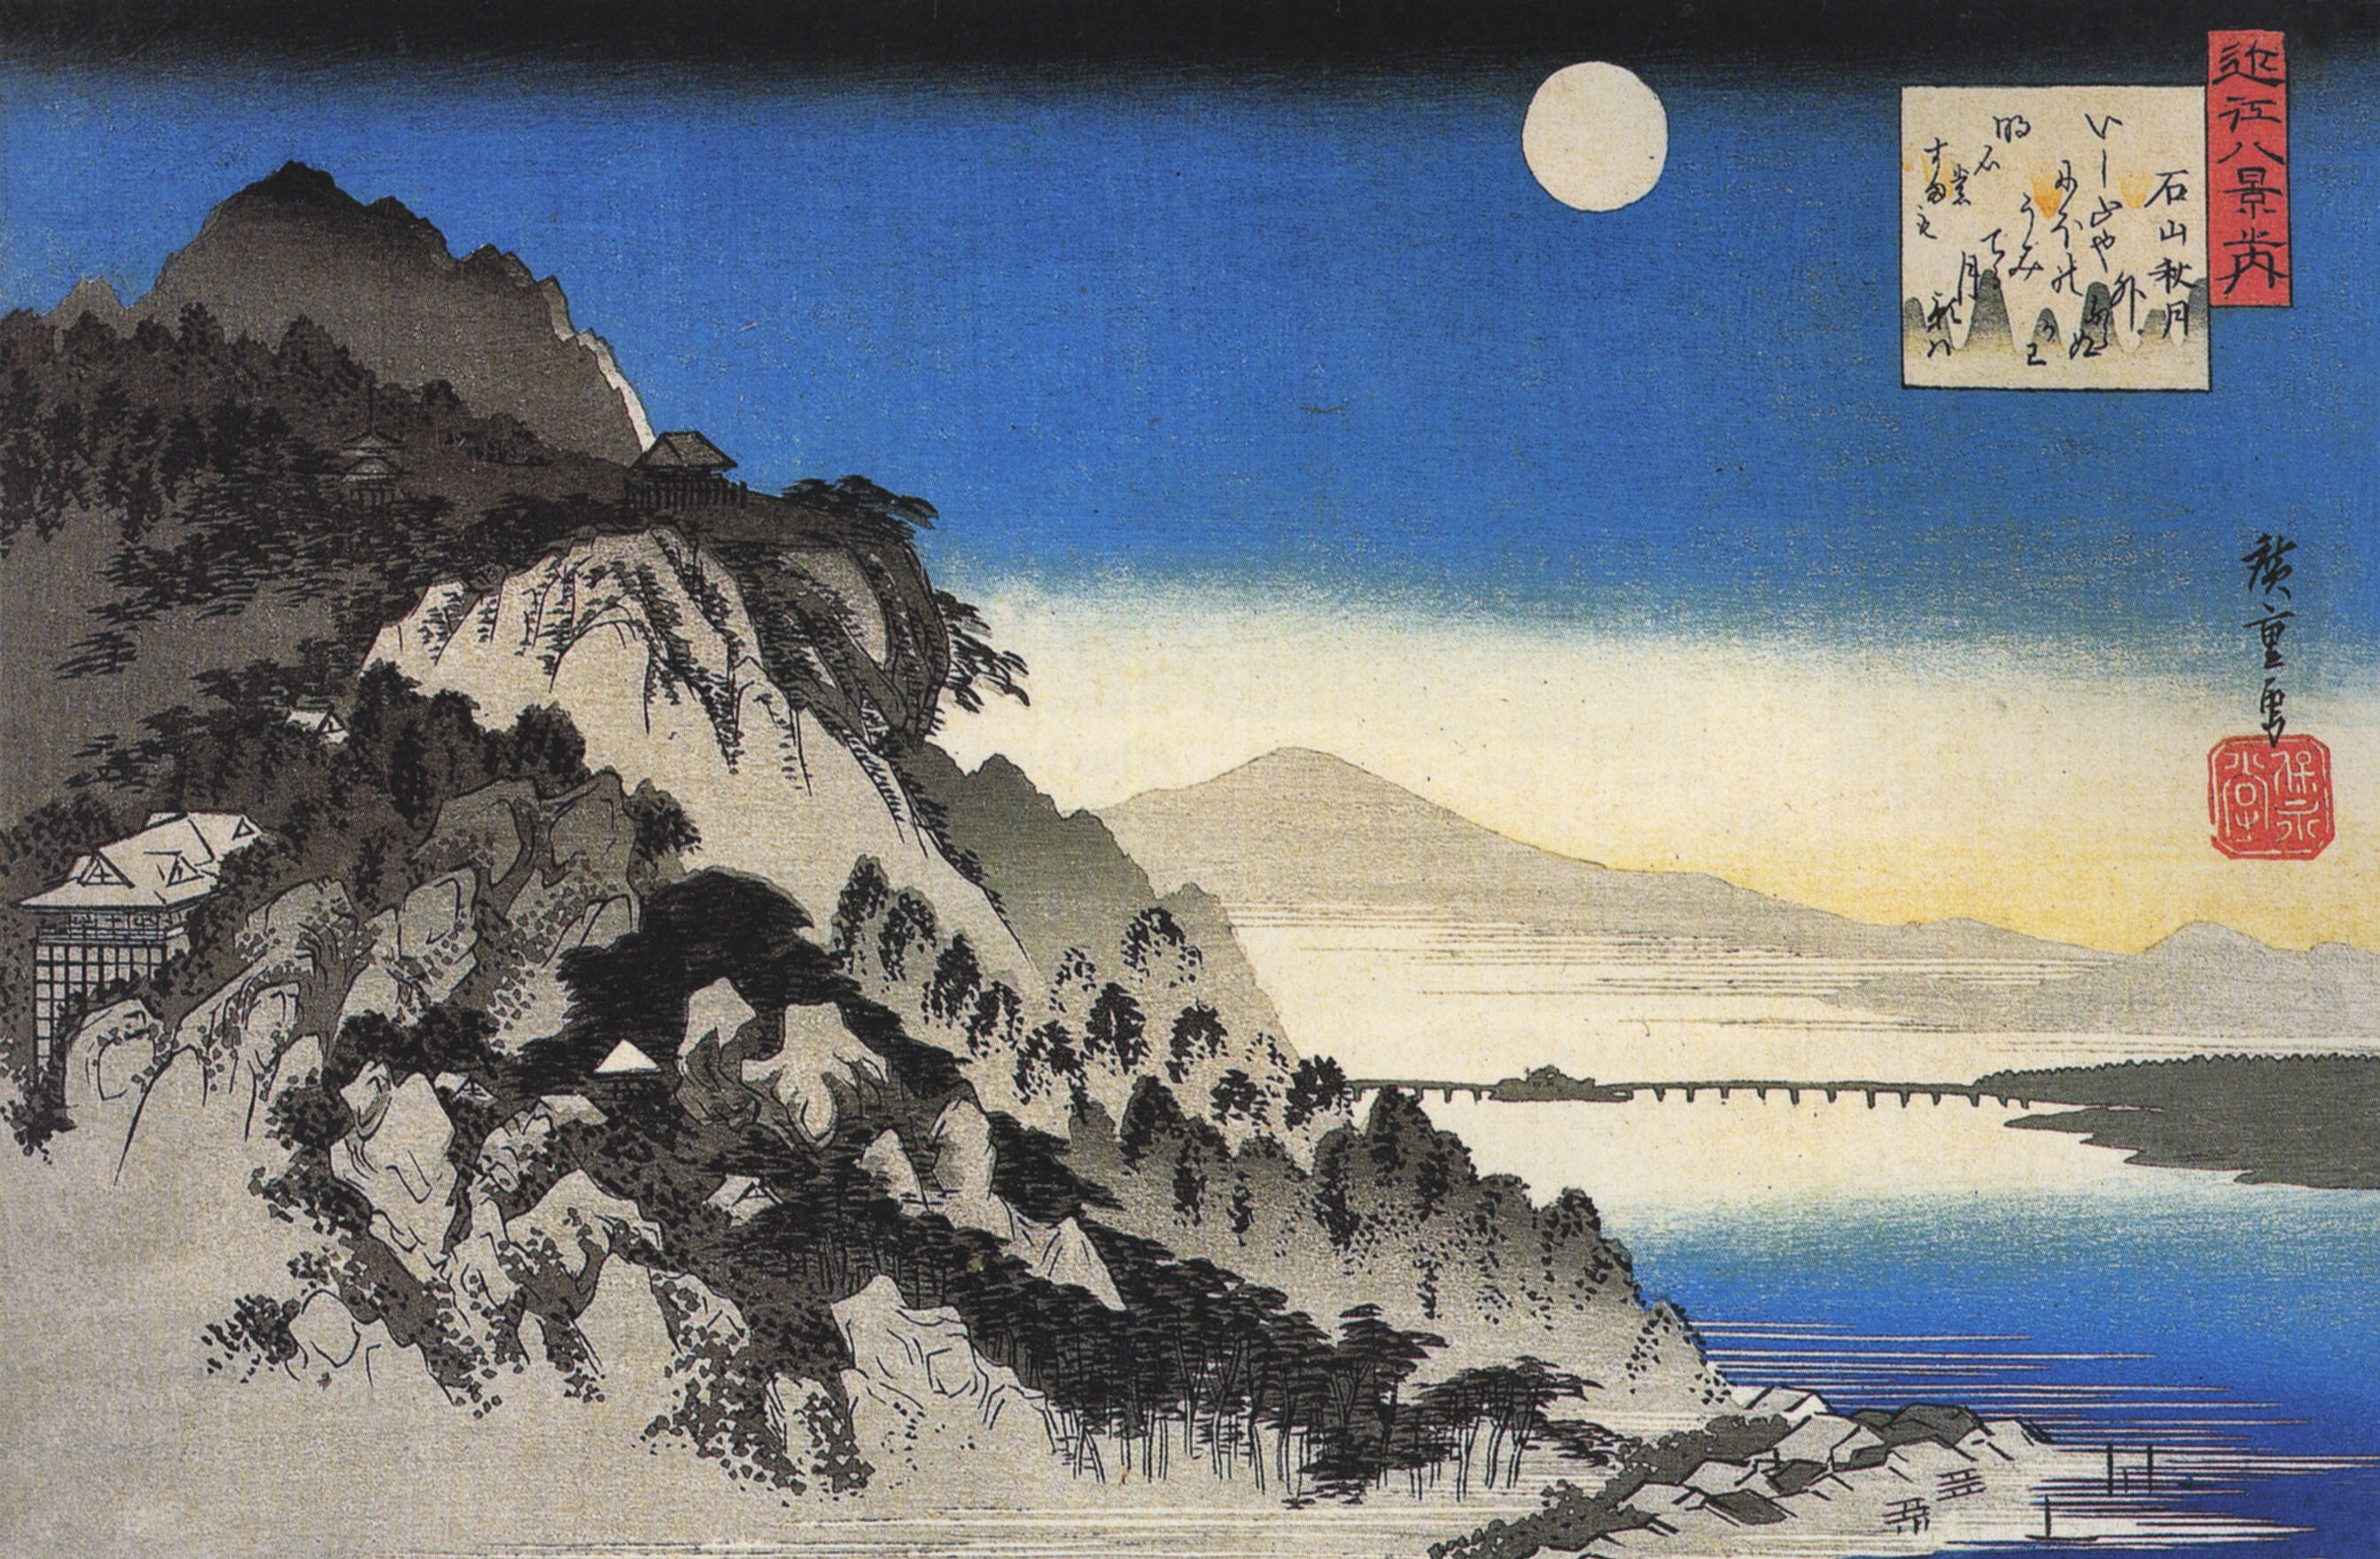 TOM CLARK: Issa: Forty nine years / Hiroshige: Fourteen ...